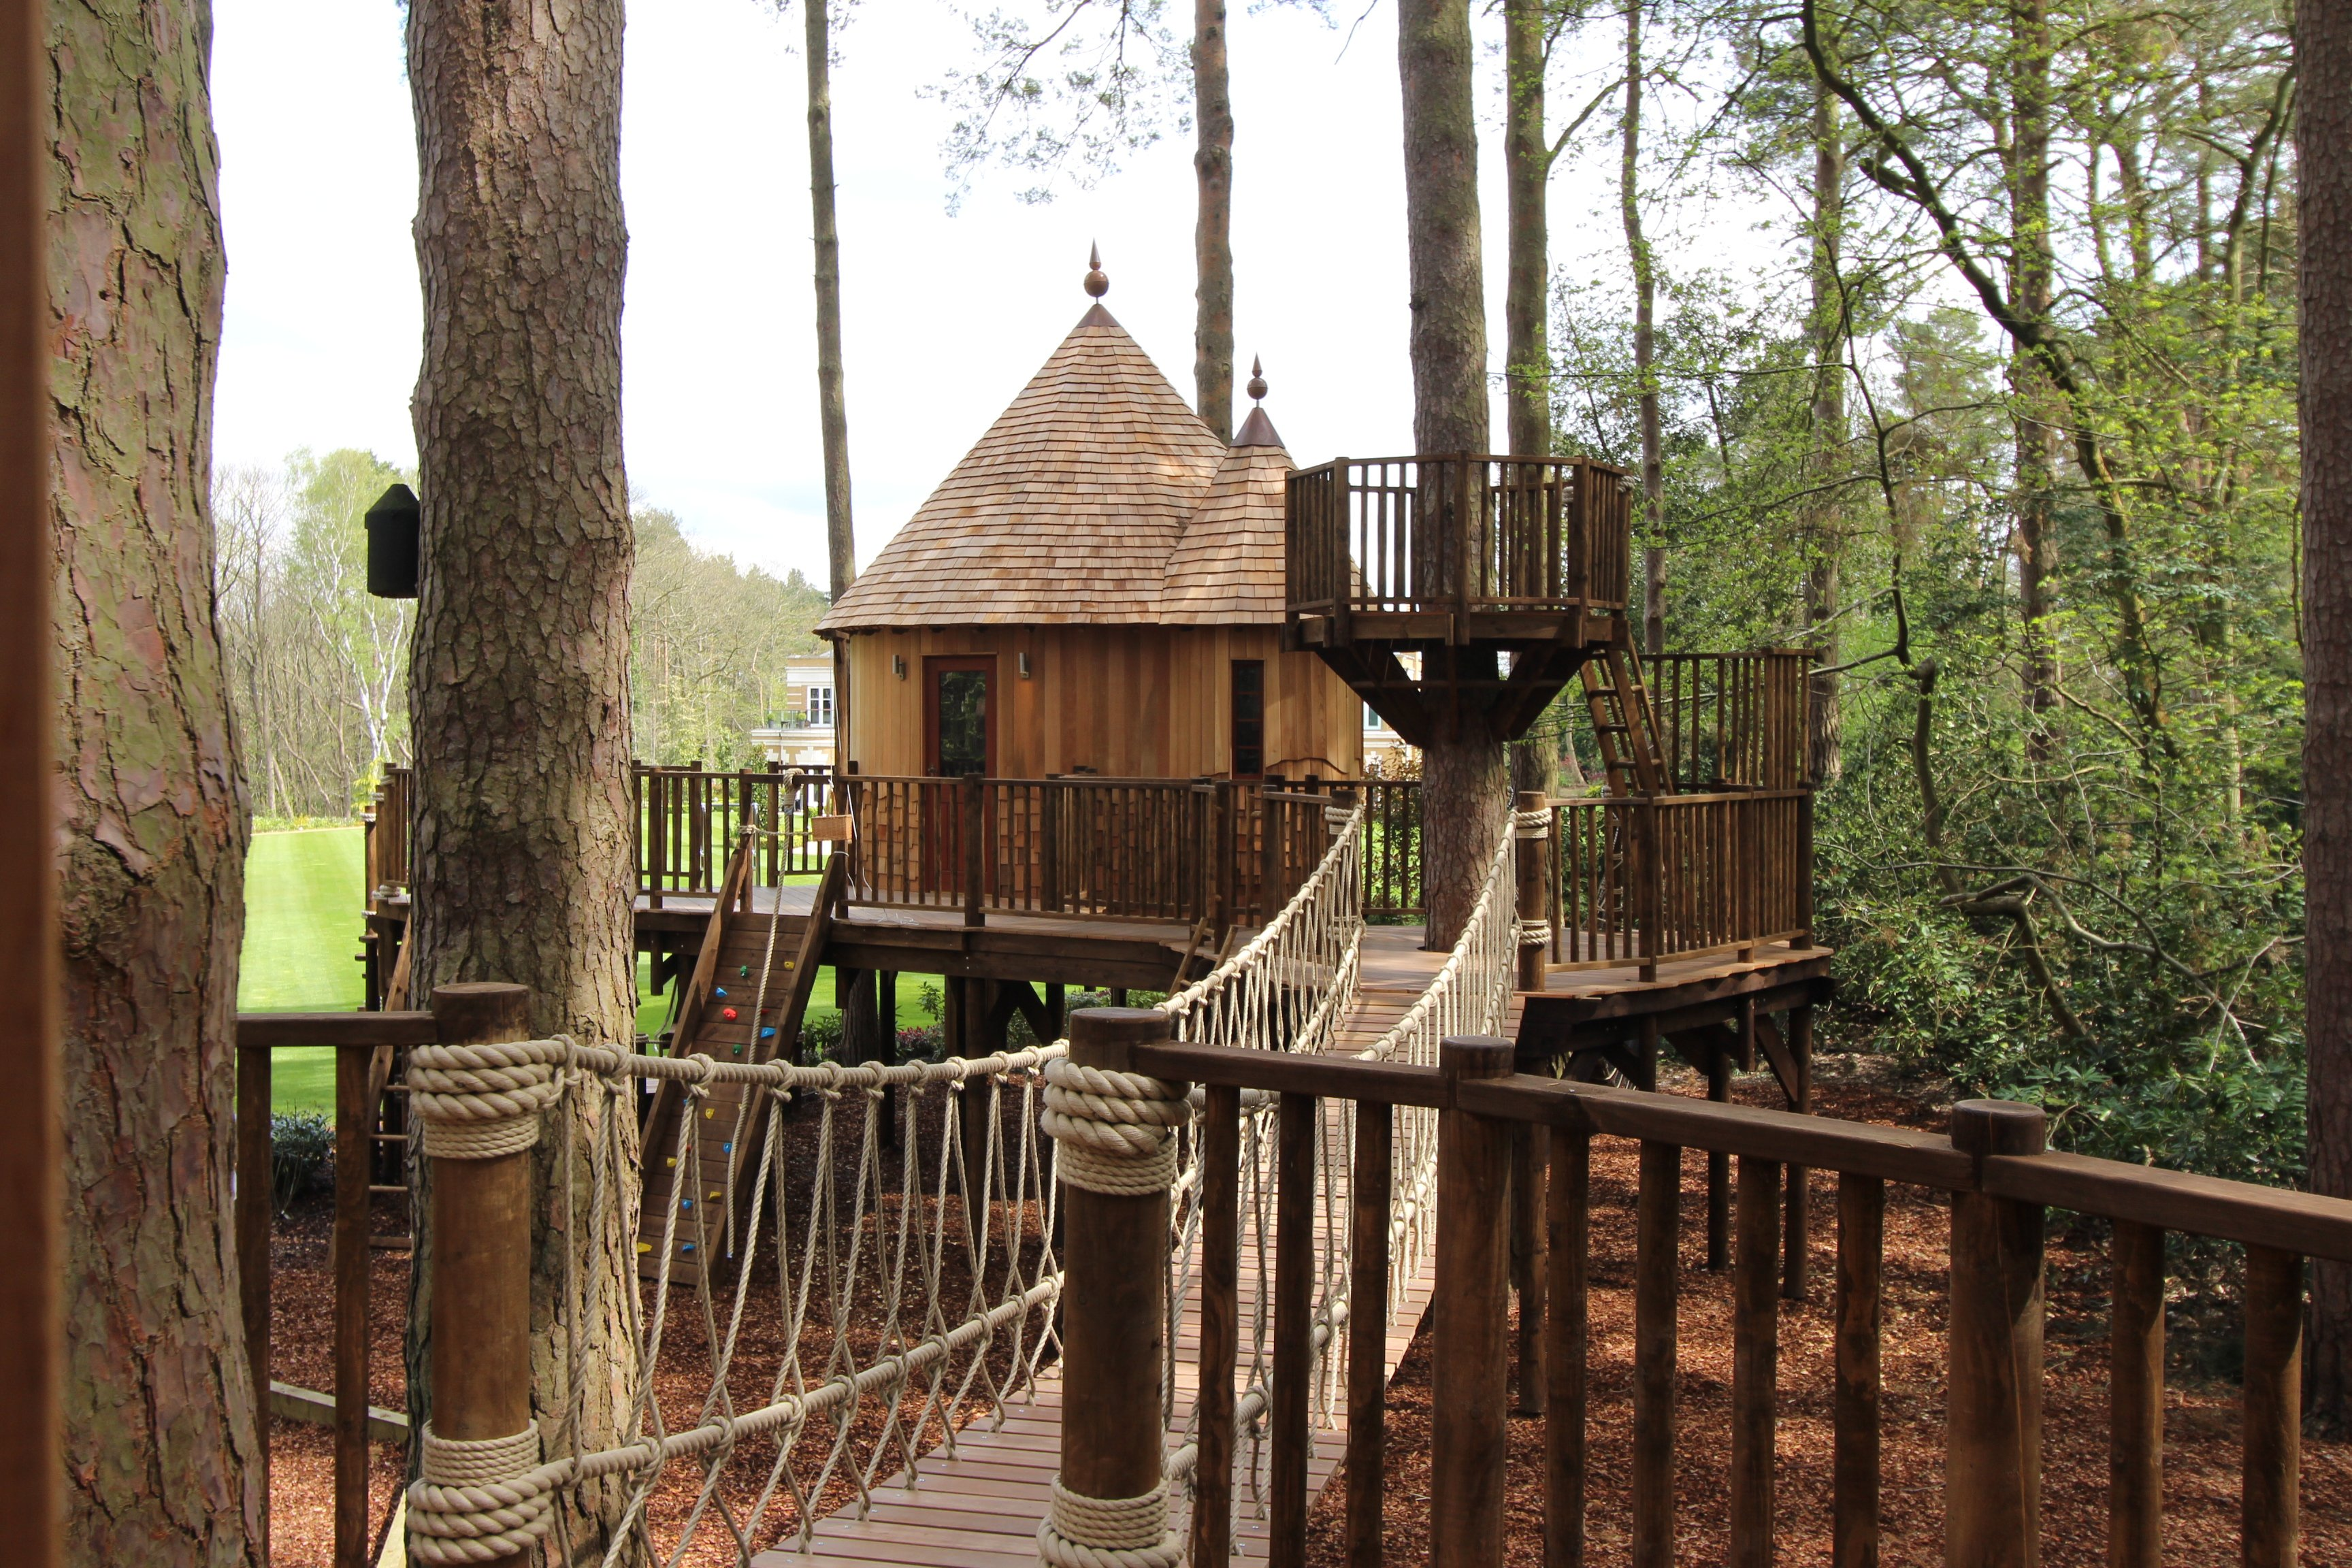 From the doorway of one treehouse, the crow's nest, climbing wall and other treehouse are clearly visible.